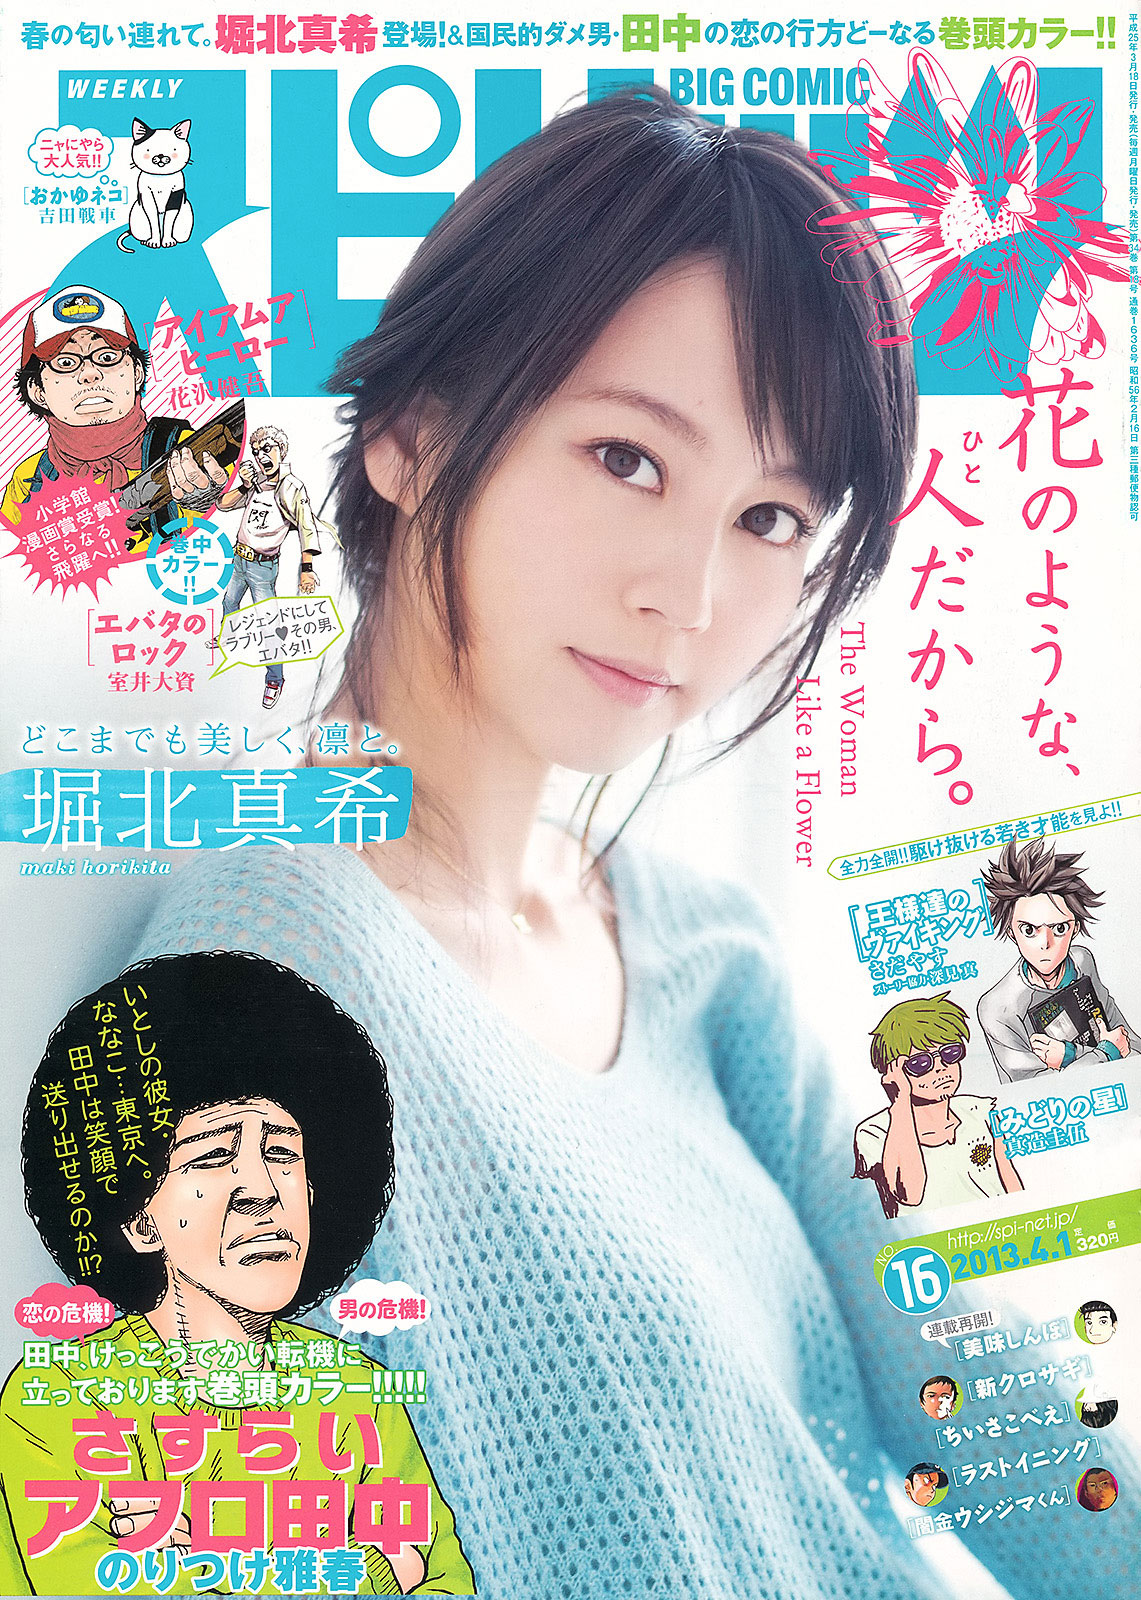 Maki Horikita Weekly Big Comic Spirits Magazine